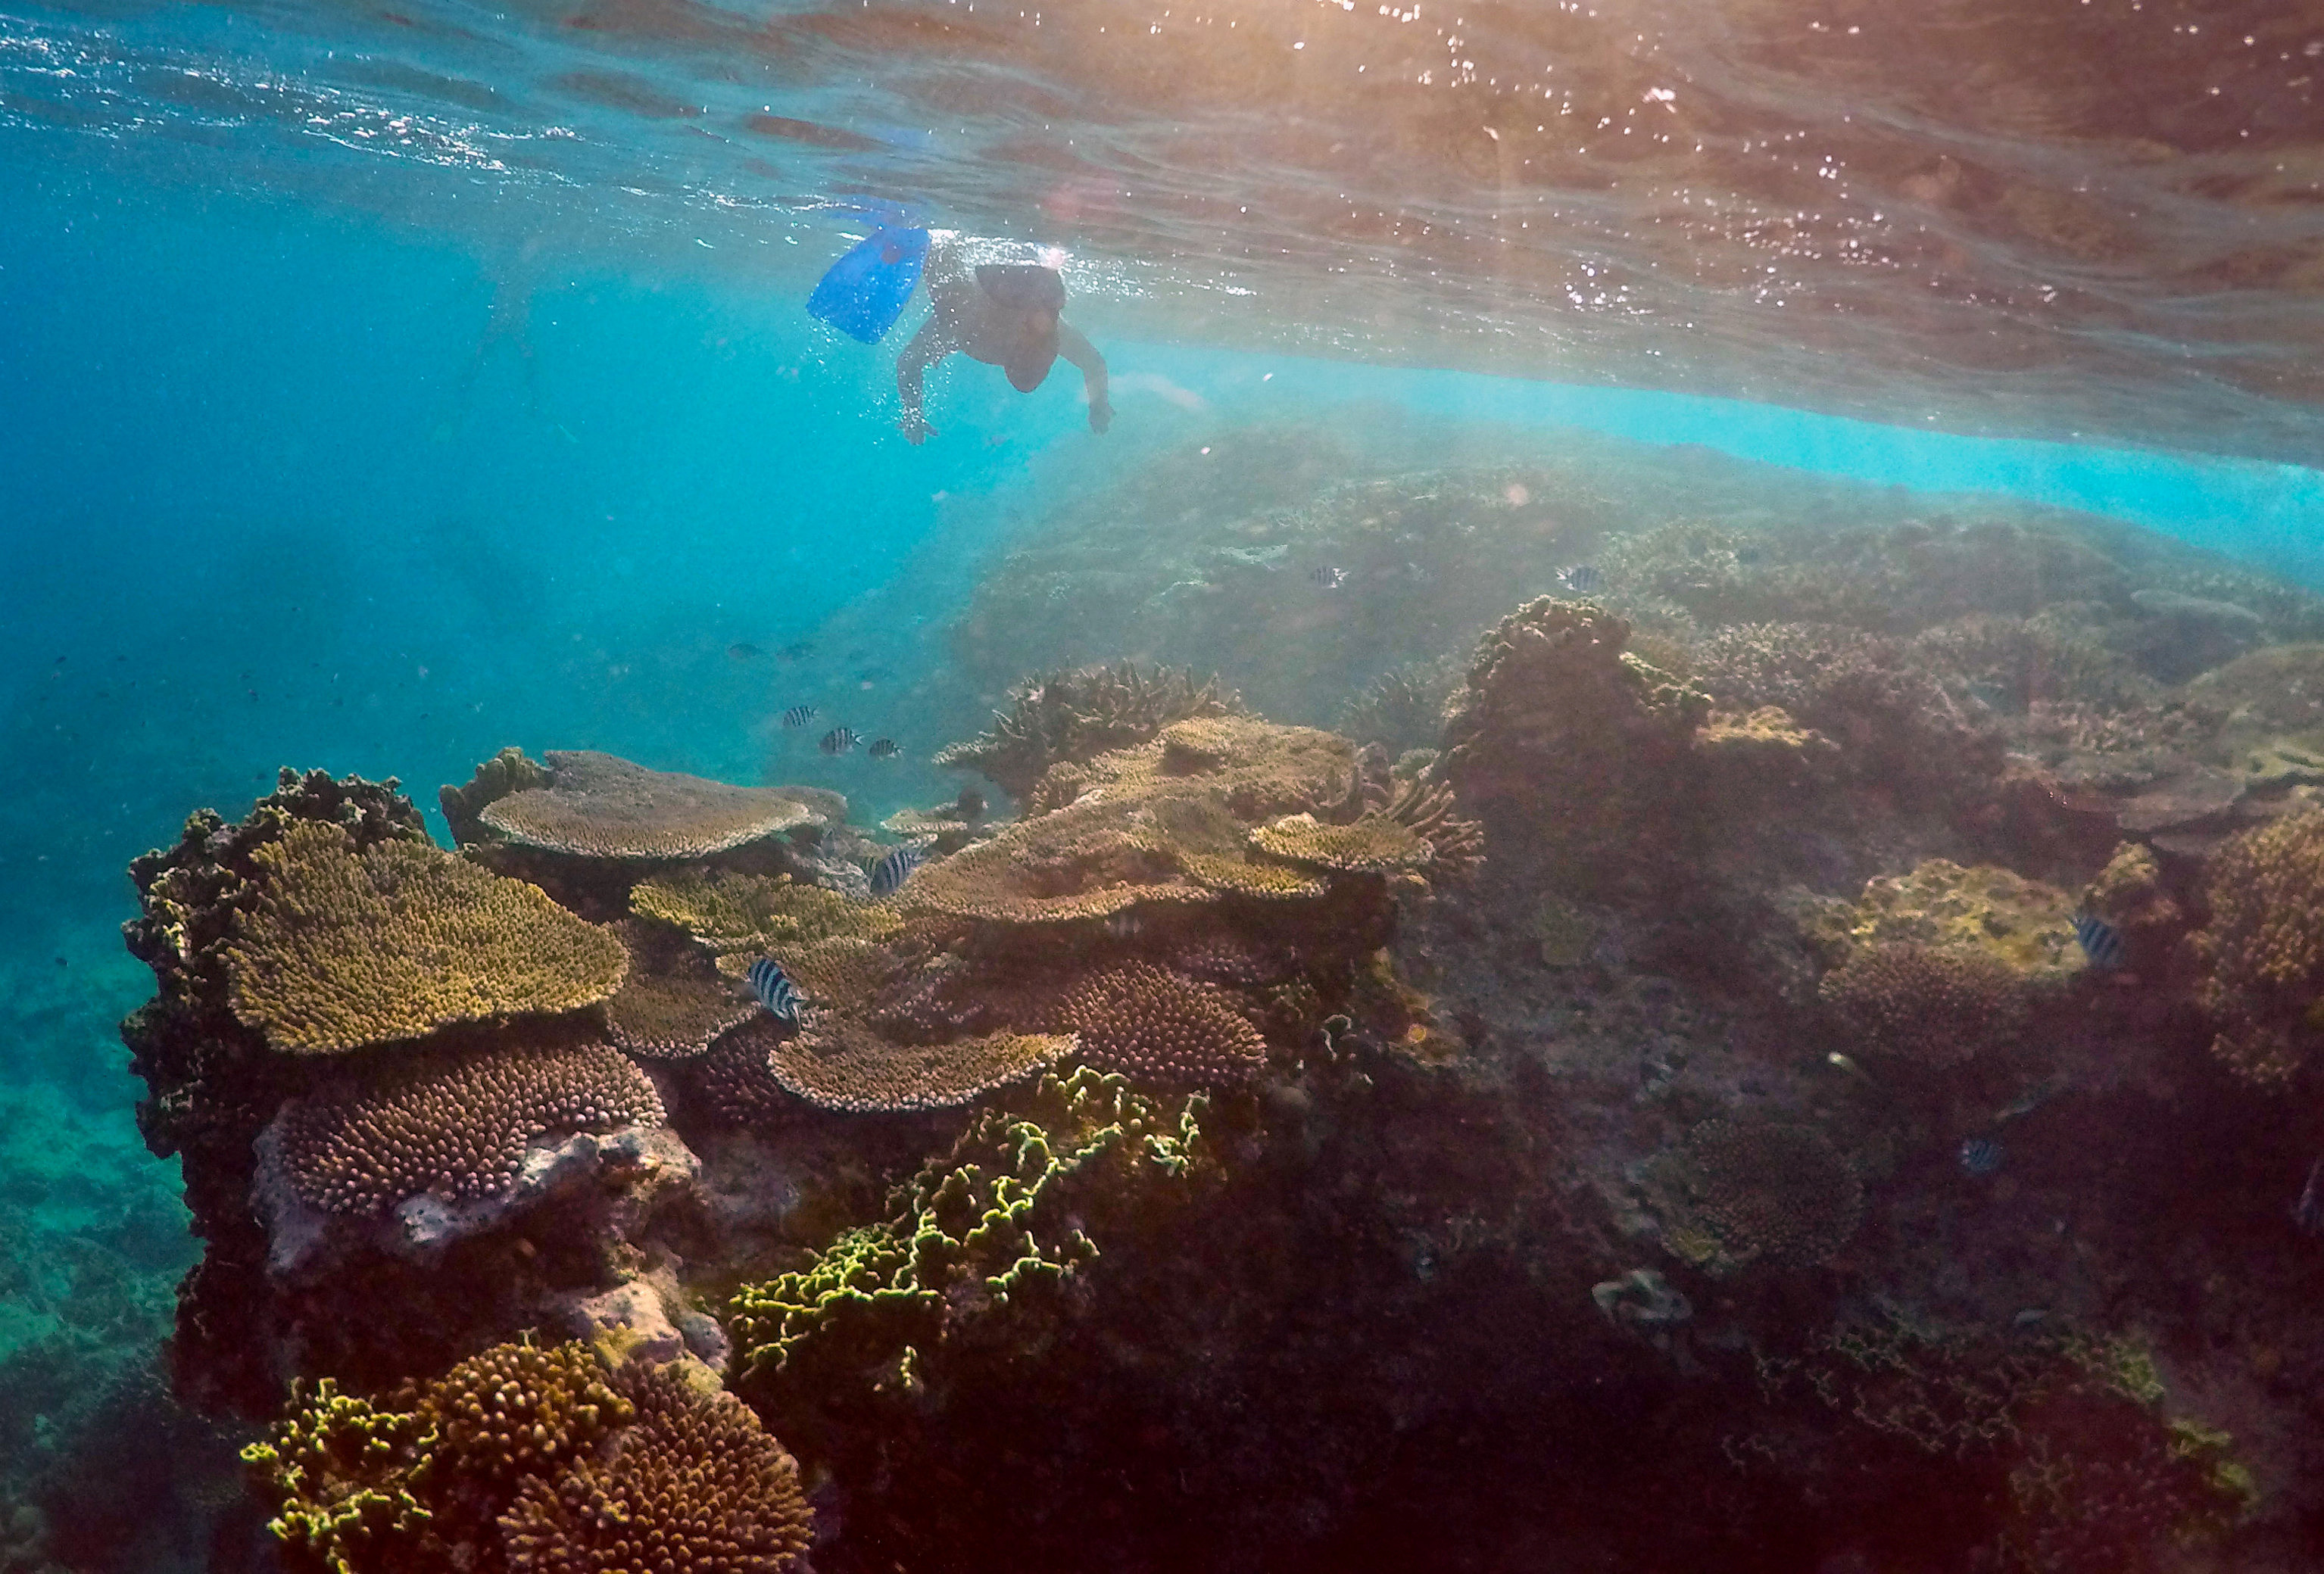 A senior ranger inspects the Great Barrier Reef off the Australian coast.